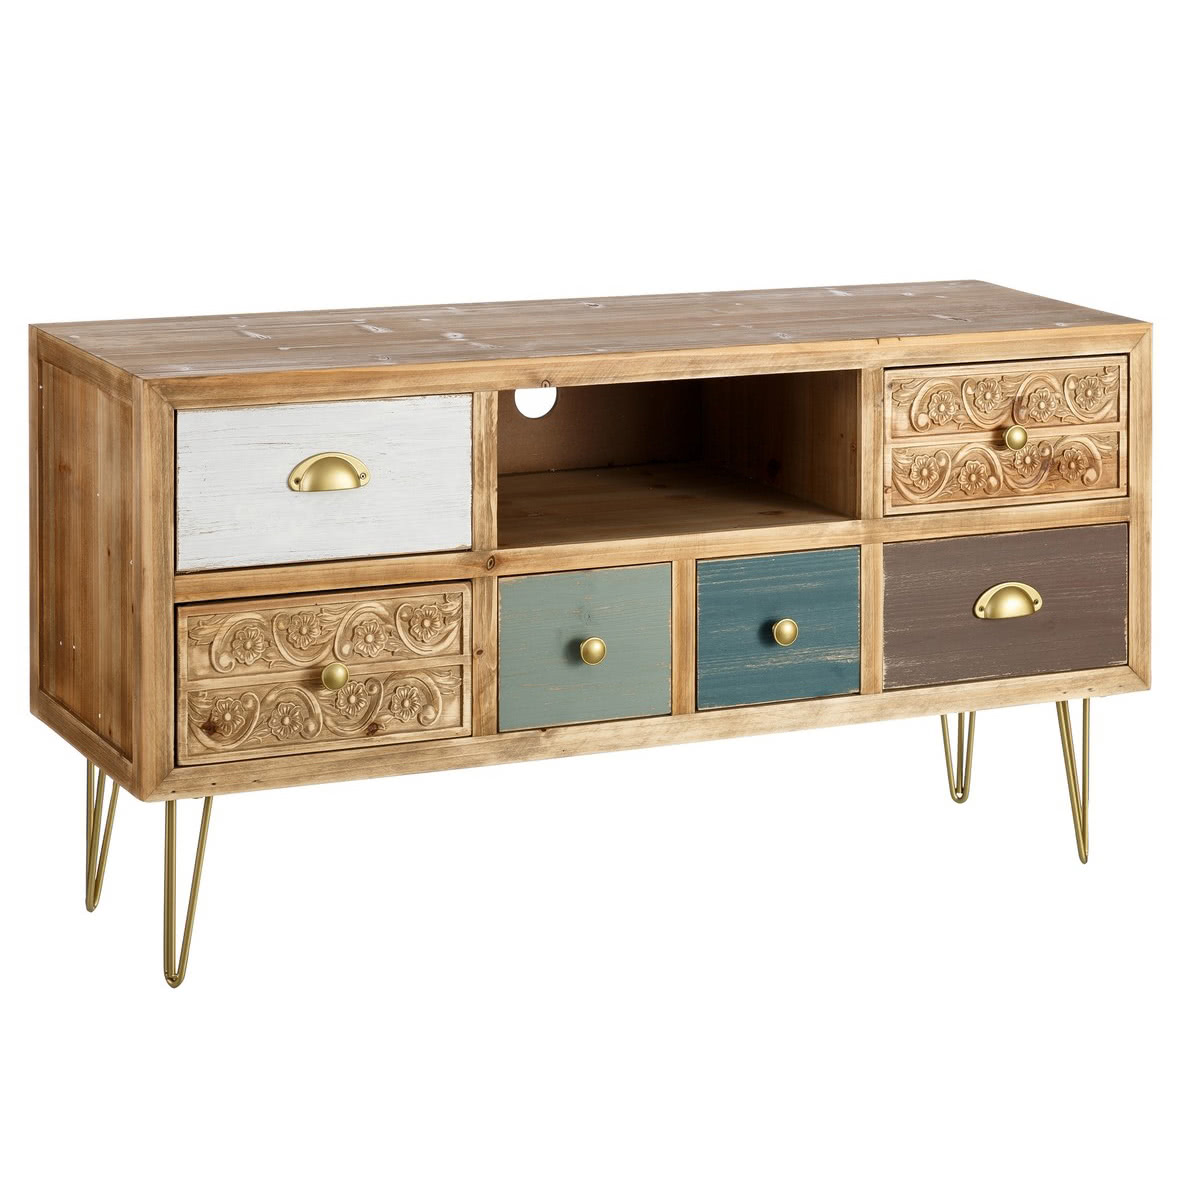 Comprar mueble stunning mueble de bao a with comprar for Zapatero vintage barato